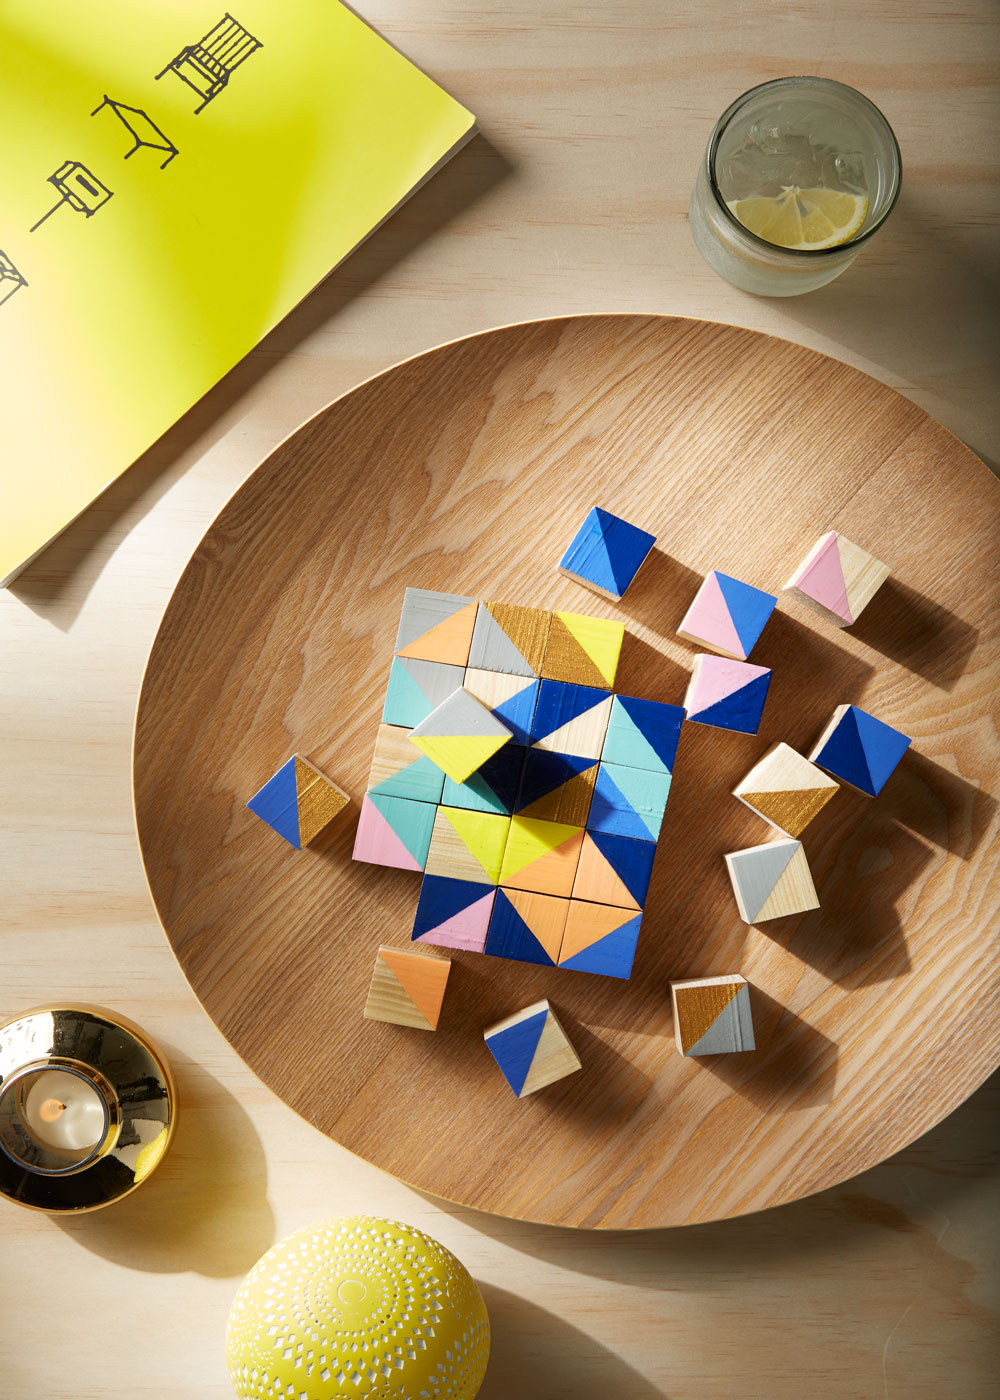 Make This Decorative Puzzle With Wooden Blocks Better